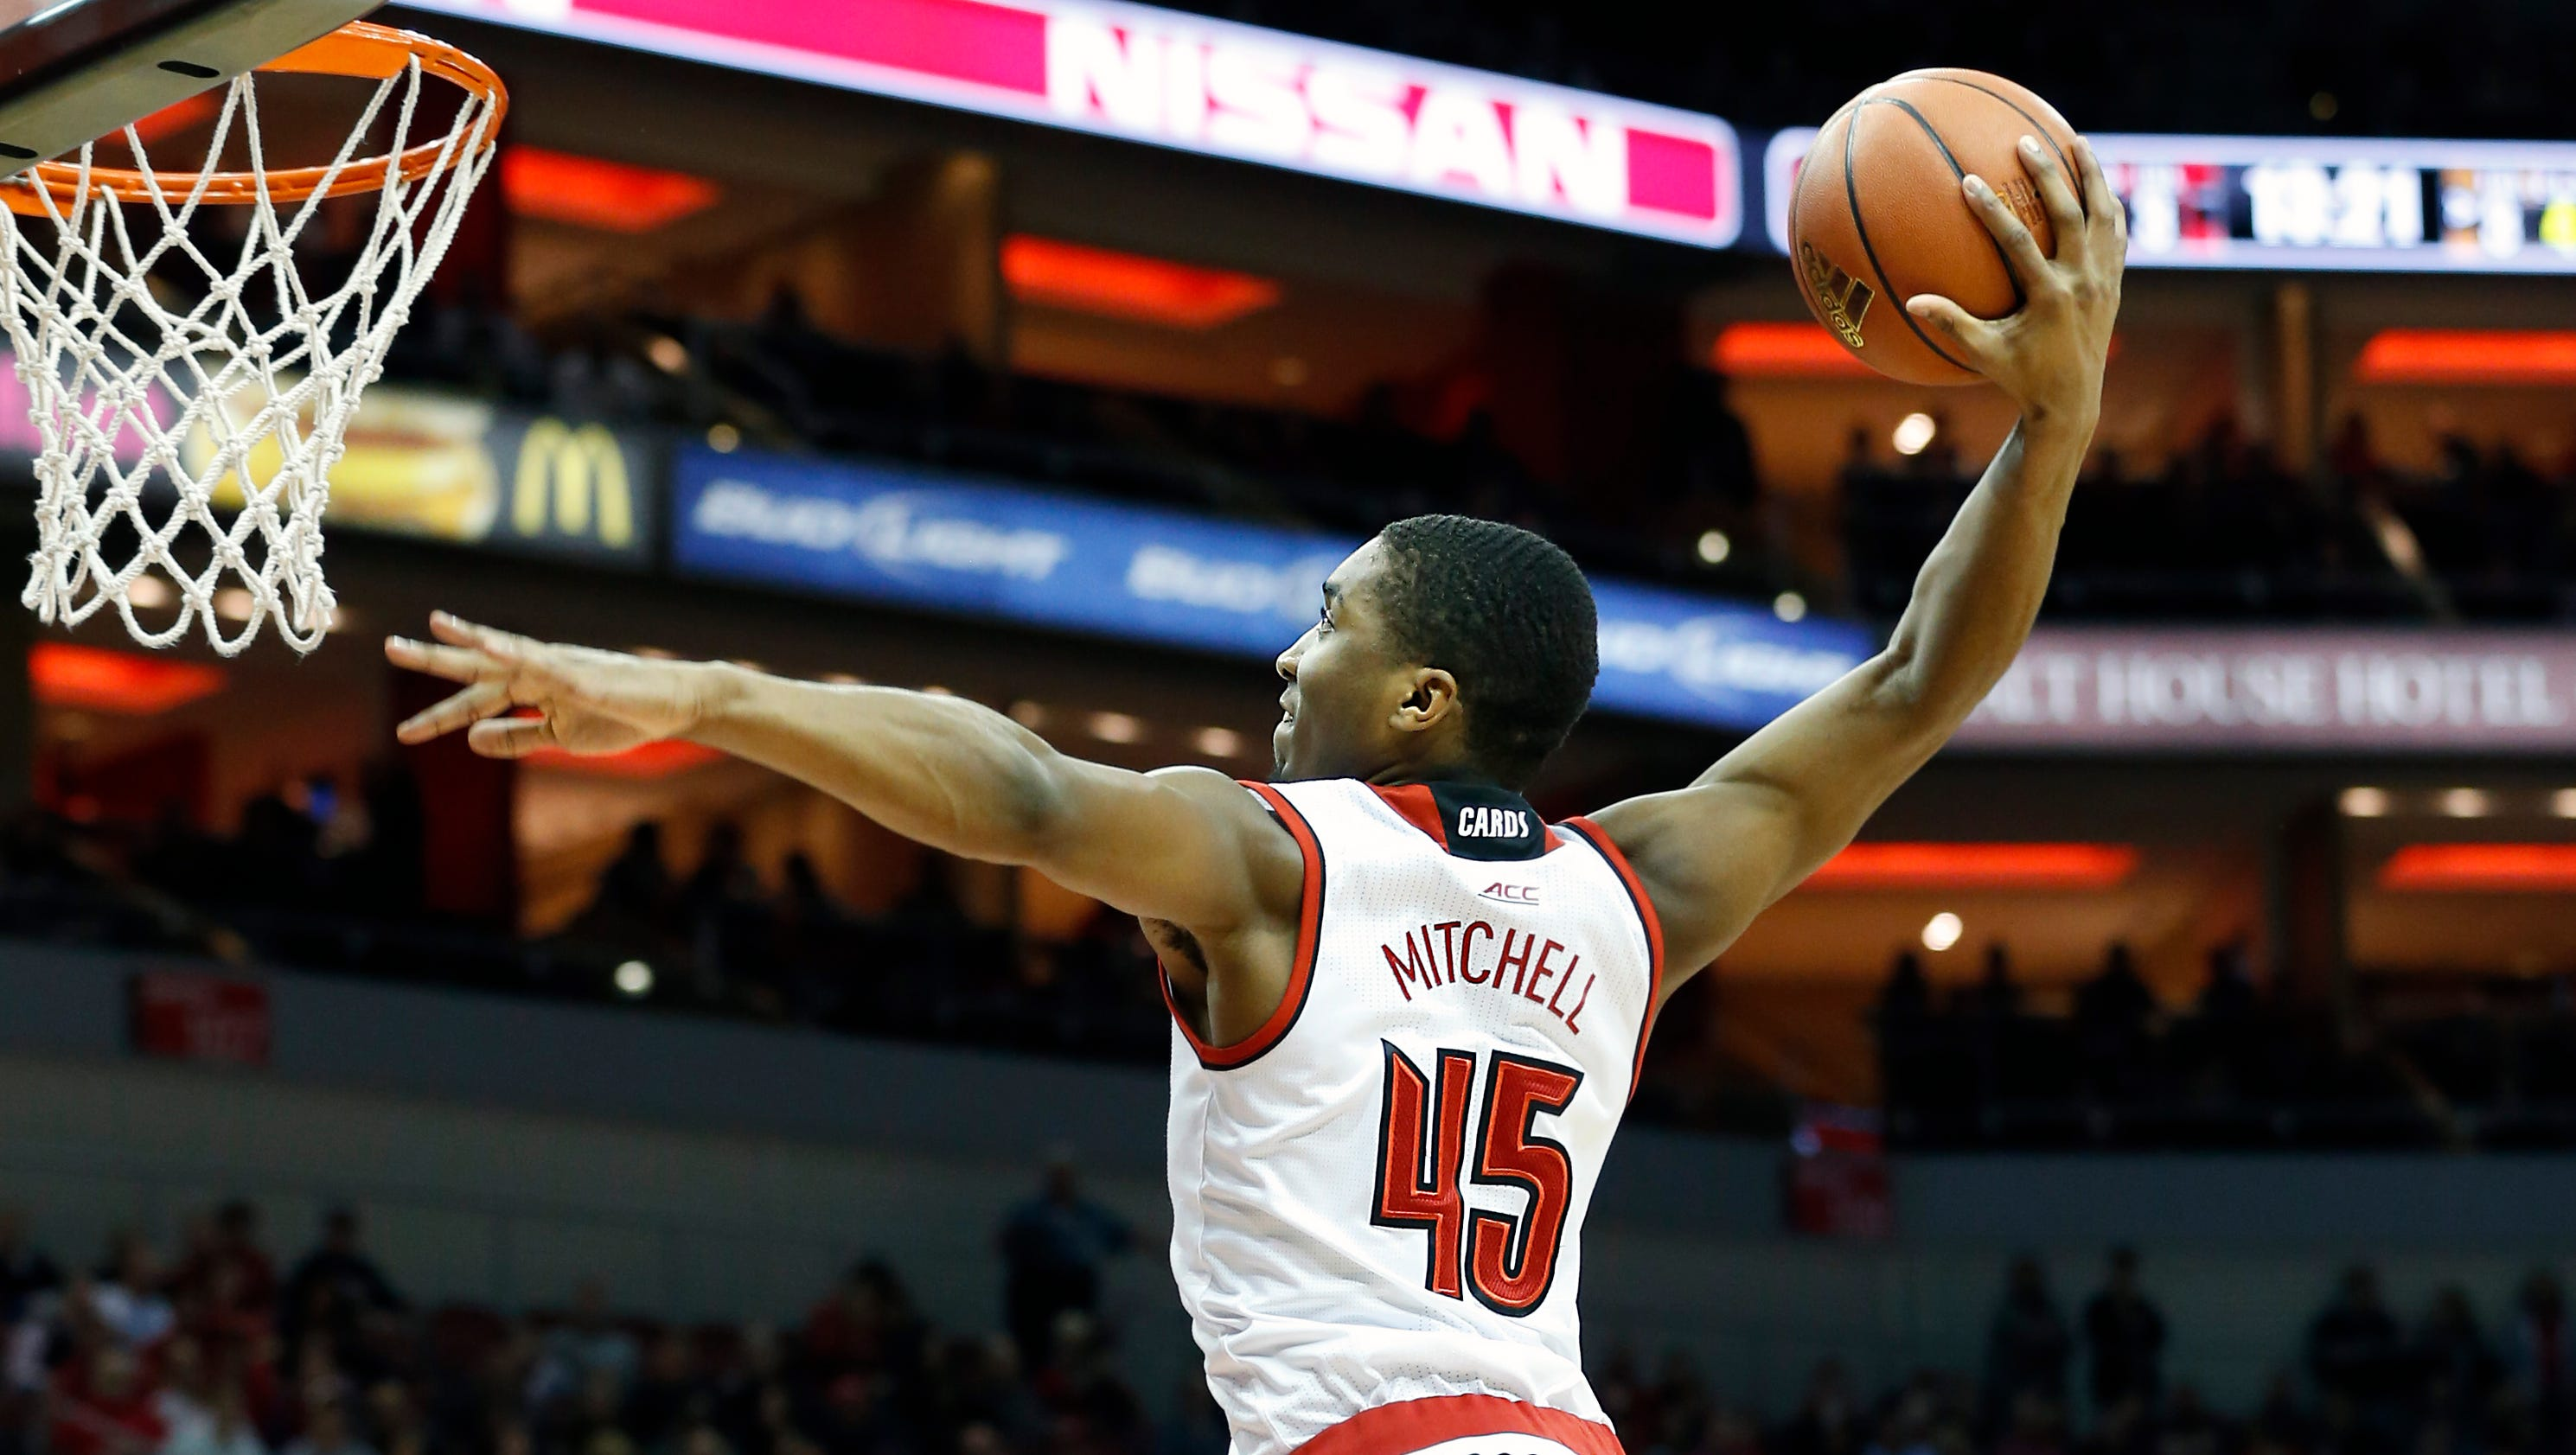 Sullivan | Pitino keeps players on effective edge